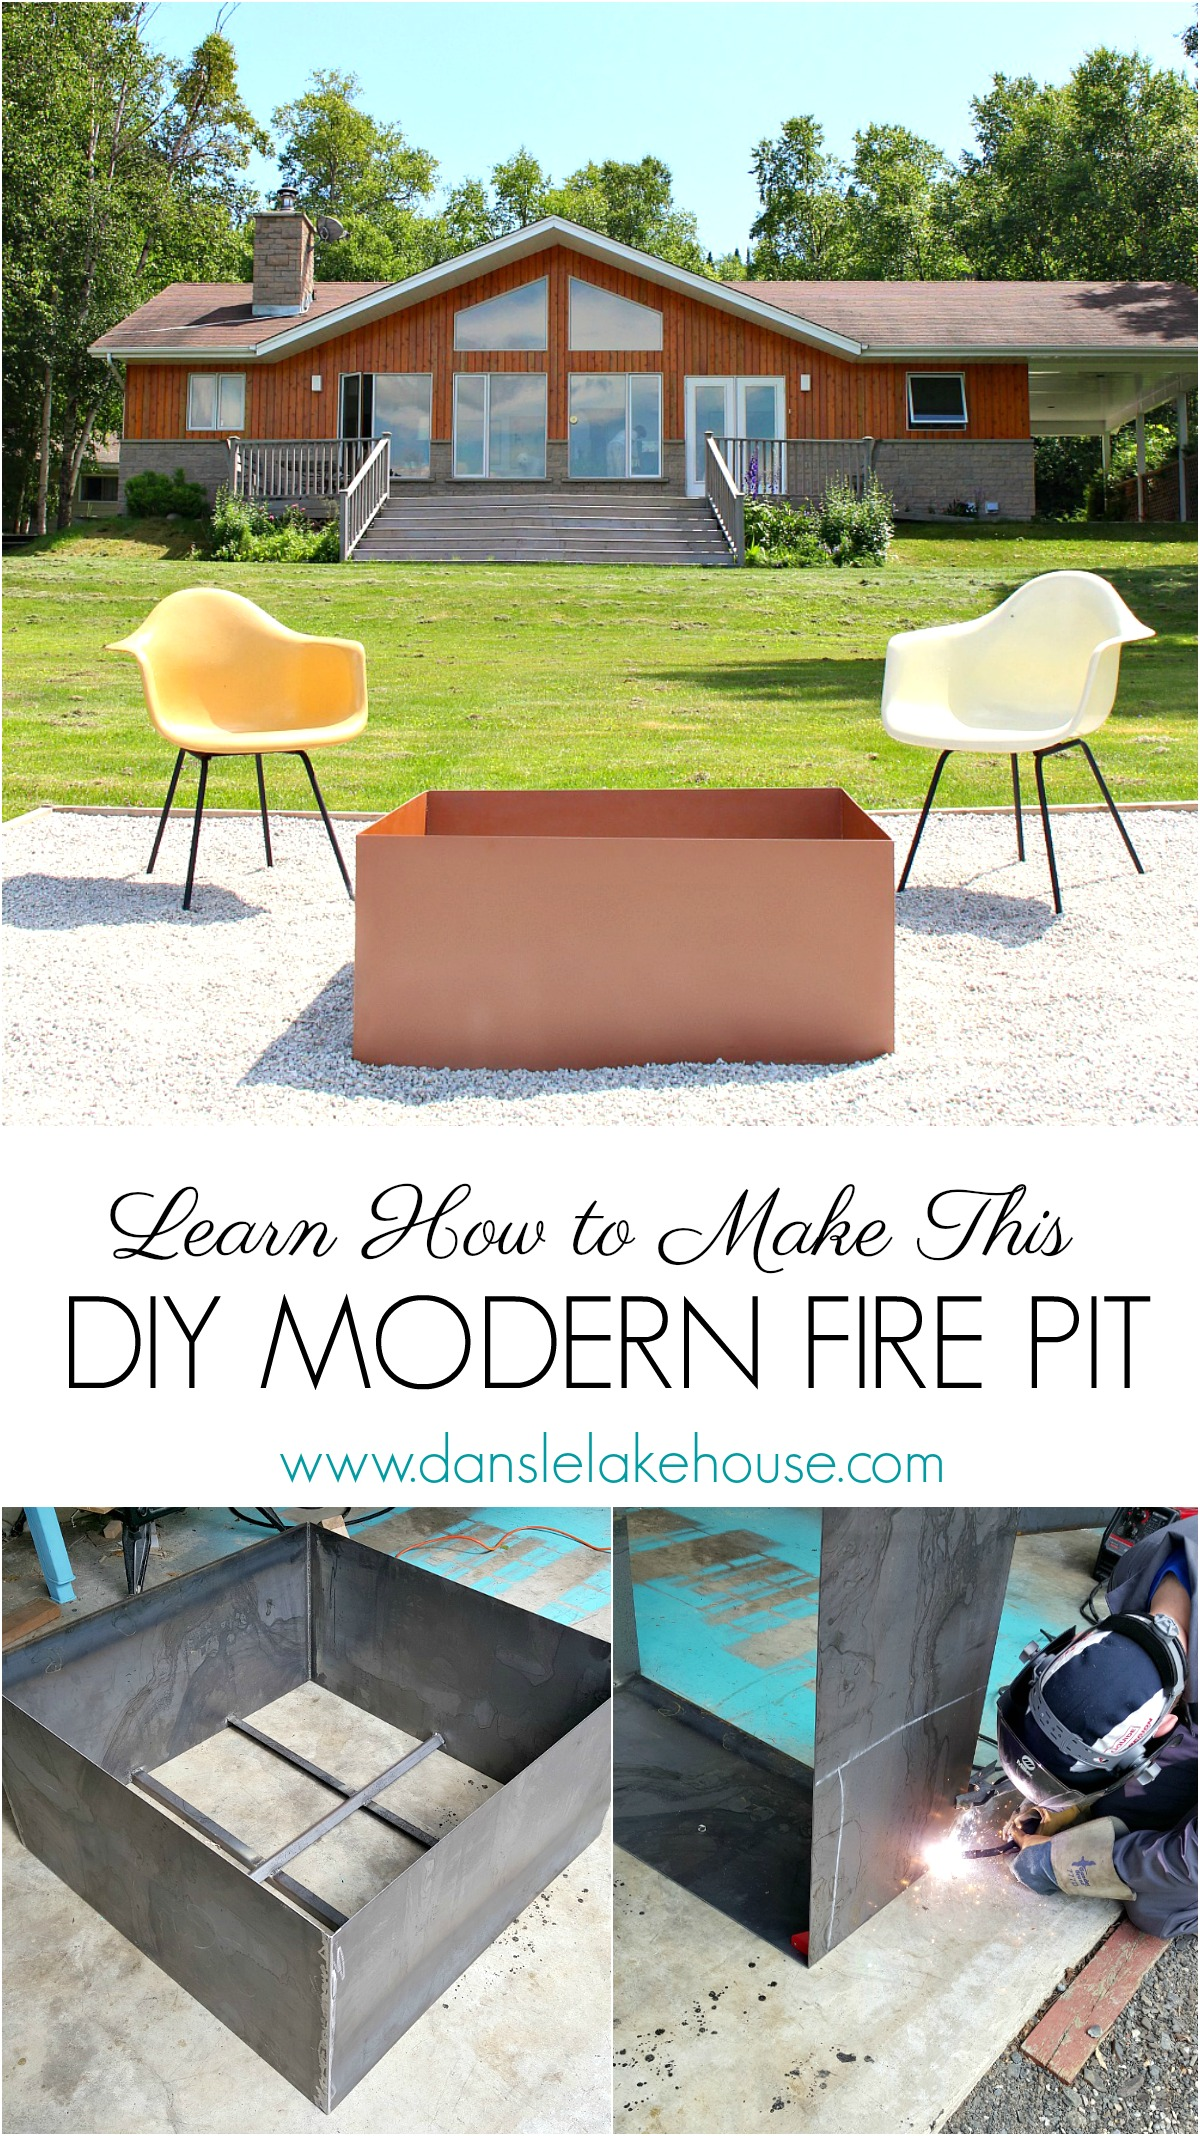 Welded DIY Fire Pit | Modern Fire Pit Makeover for Cute Lake House | Dans le Lakehouse #firepit #diy #diyfirepit #weldingtutorials #welding